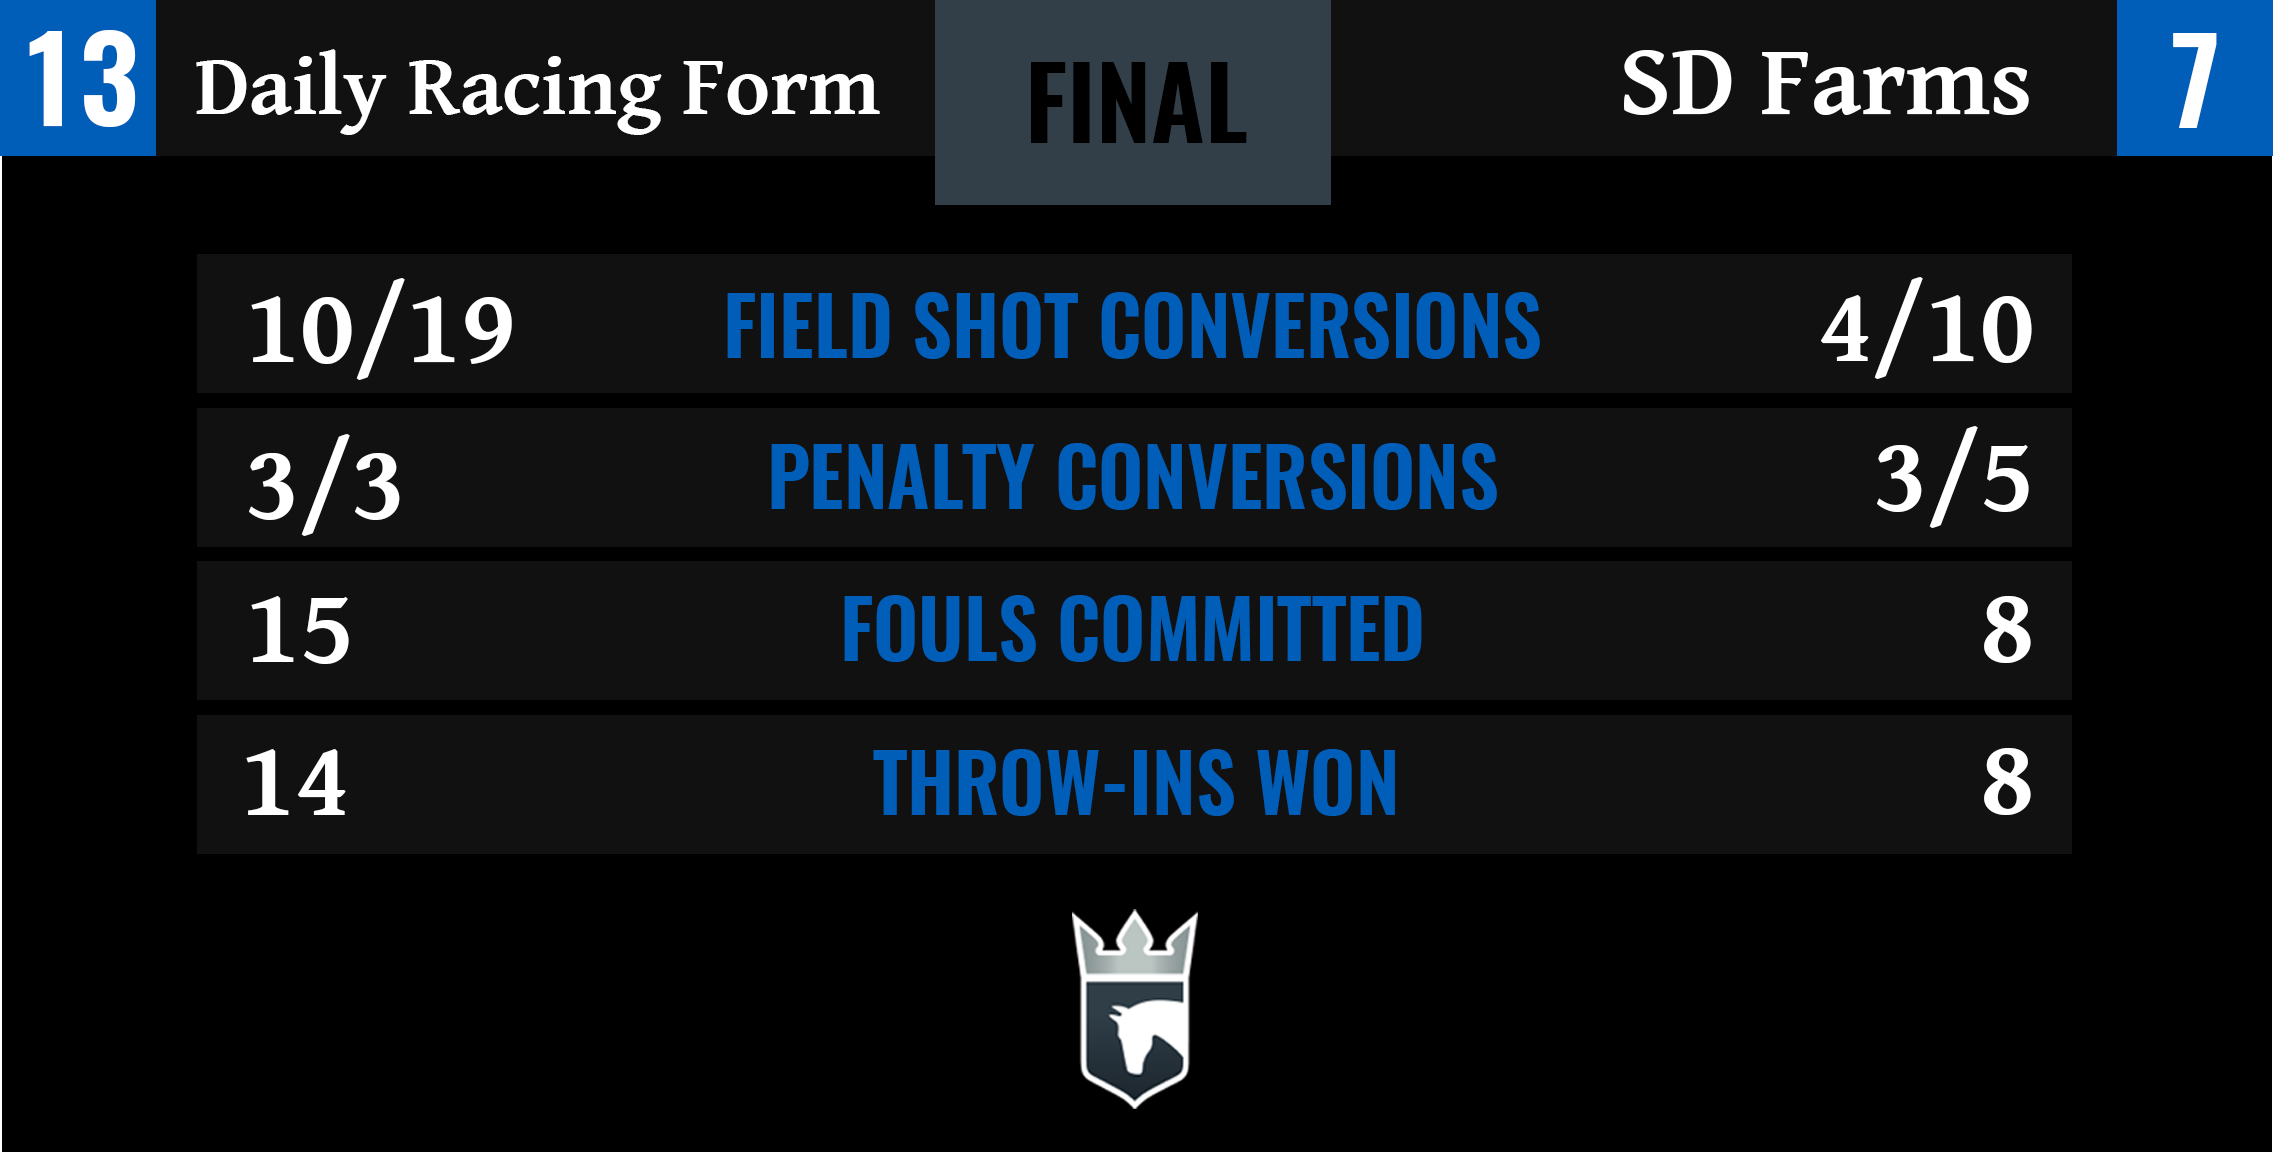 Daily Racing Form vs SD Farms Final Stats